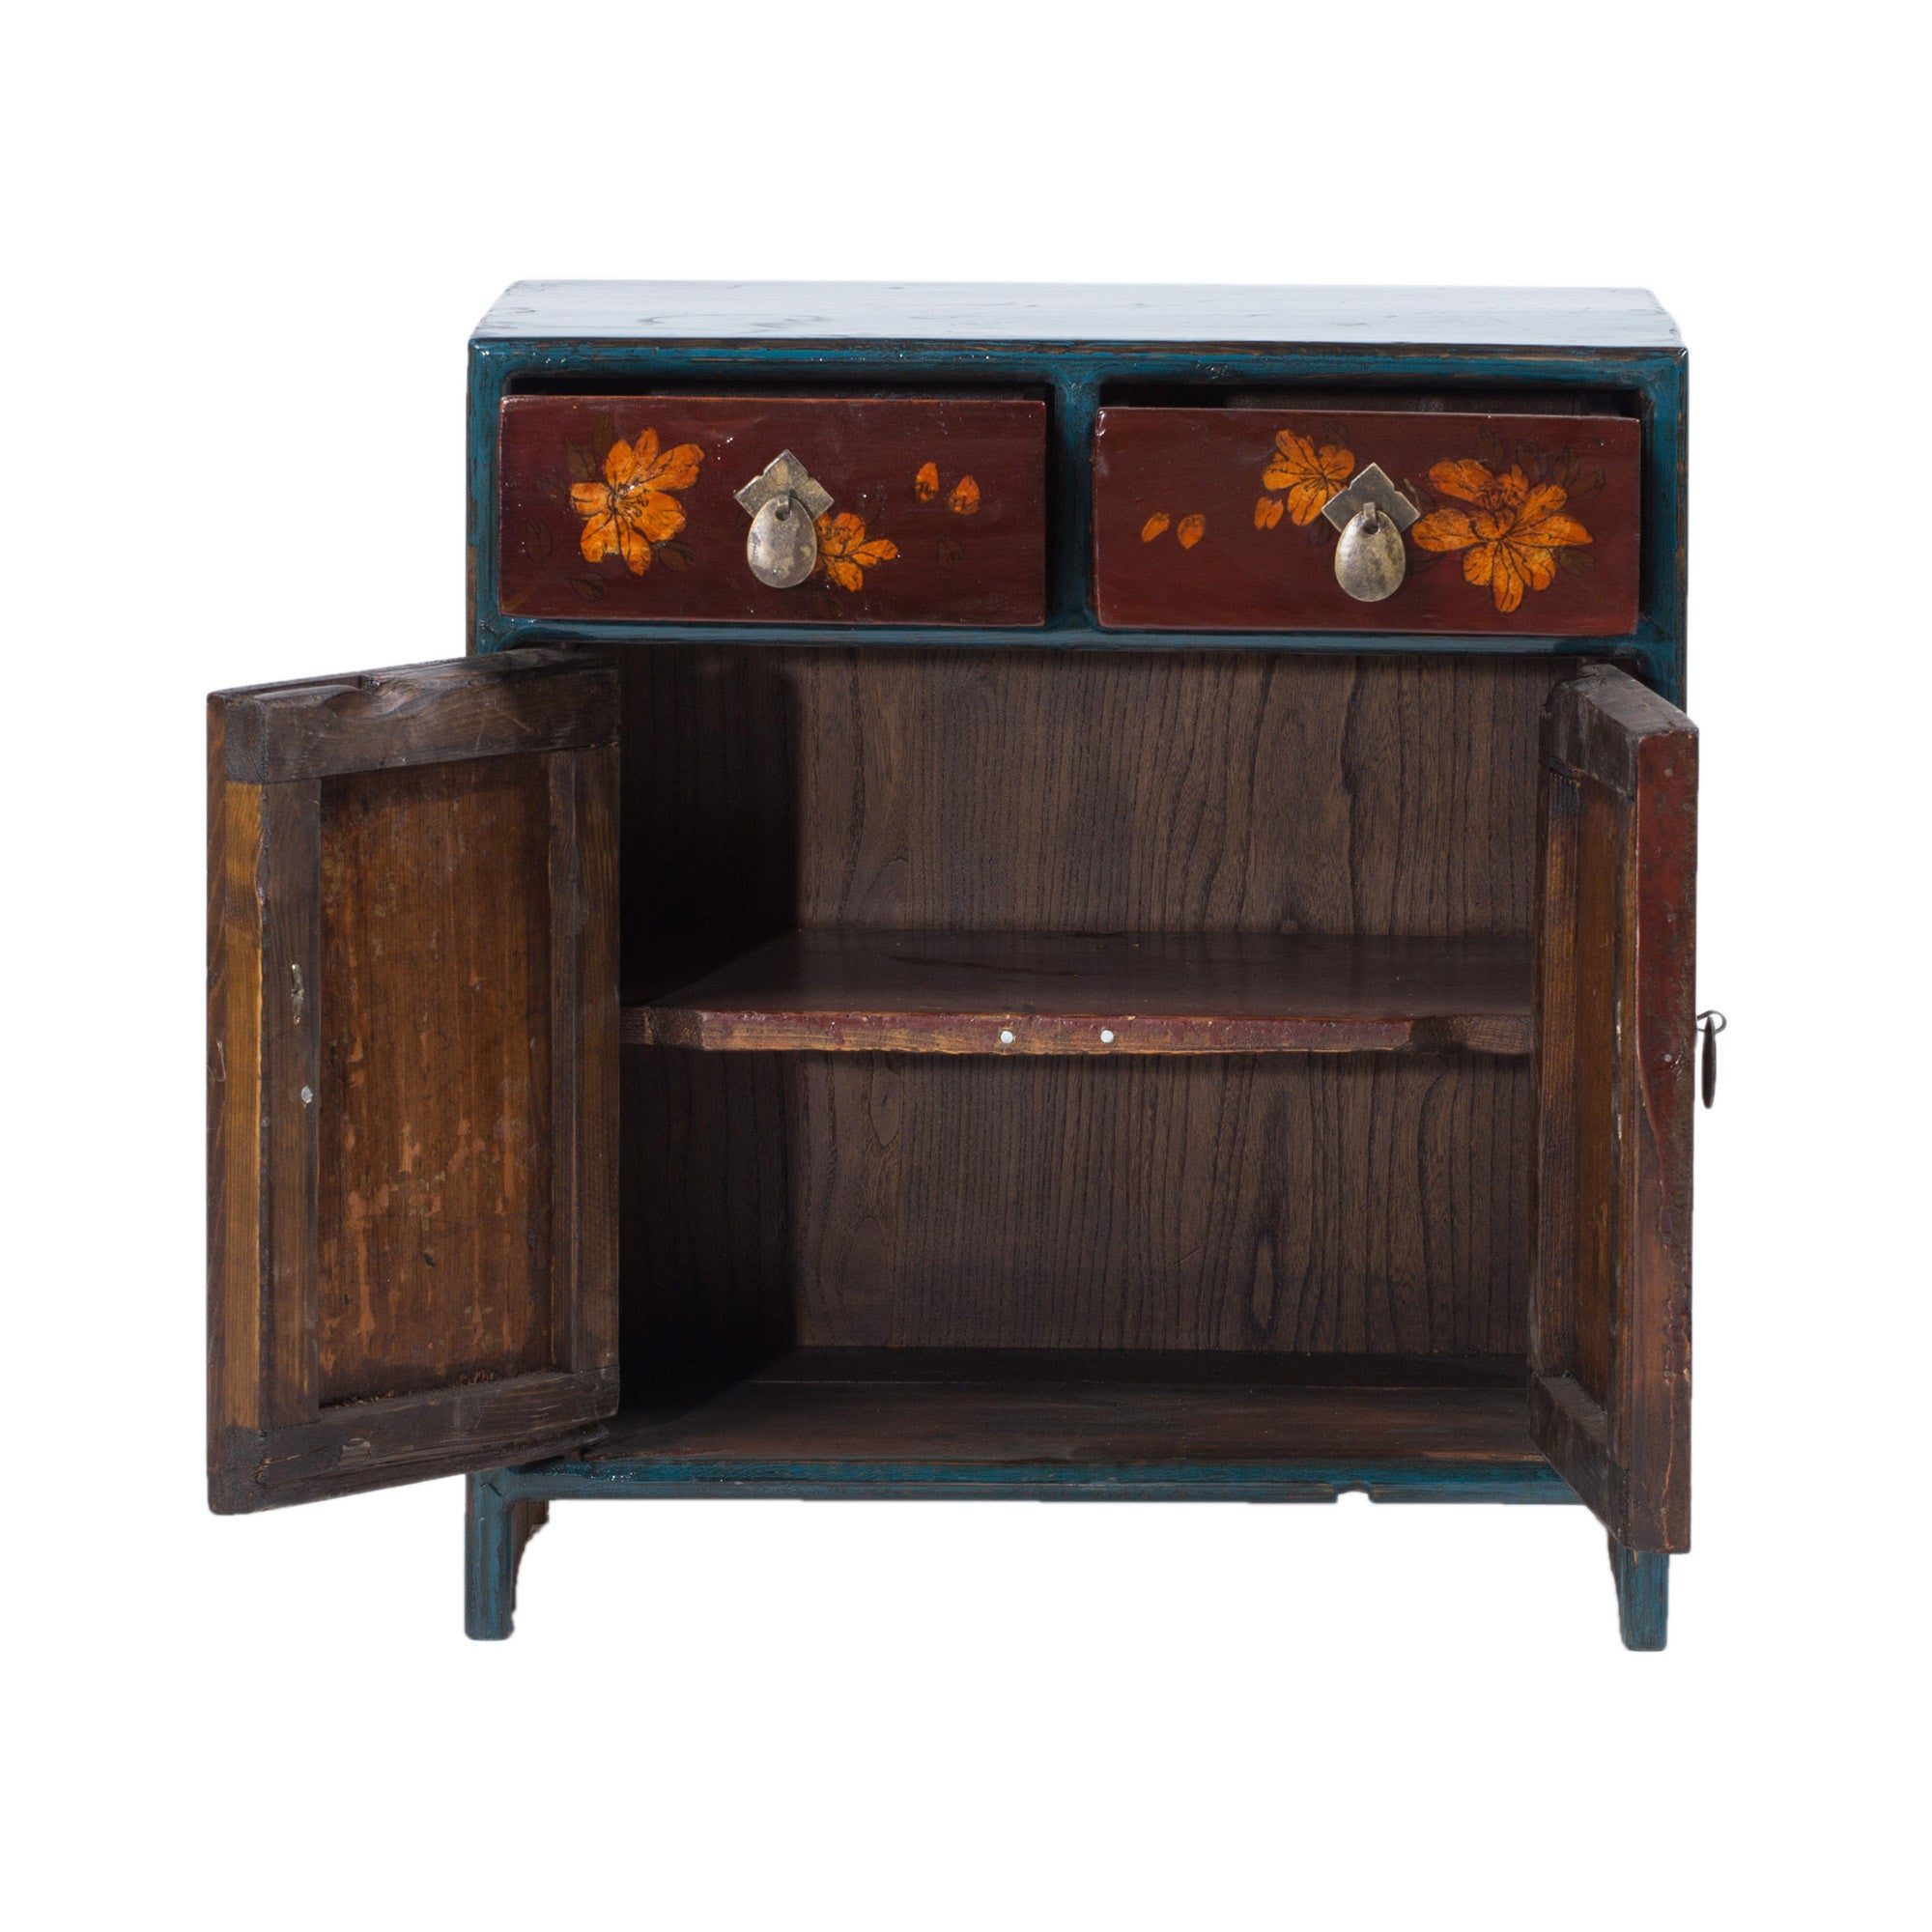 Red/Blue Painted Flower Two-Door Two-Drawer Cabinet - Chinese homewares- Rouge Shop antique stores London - city furniture